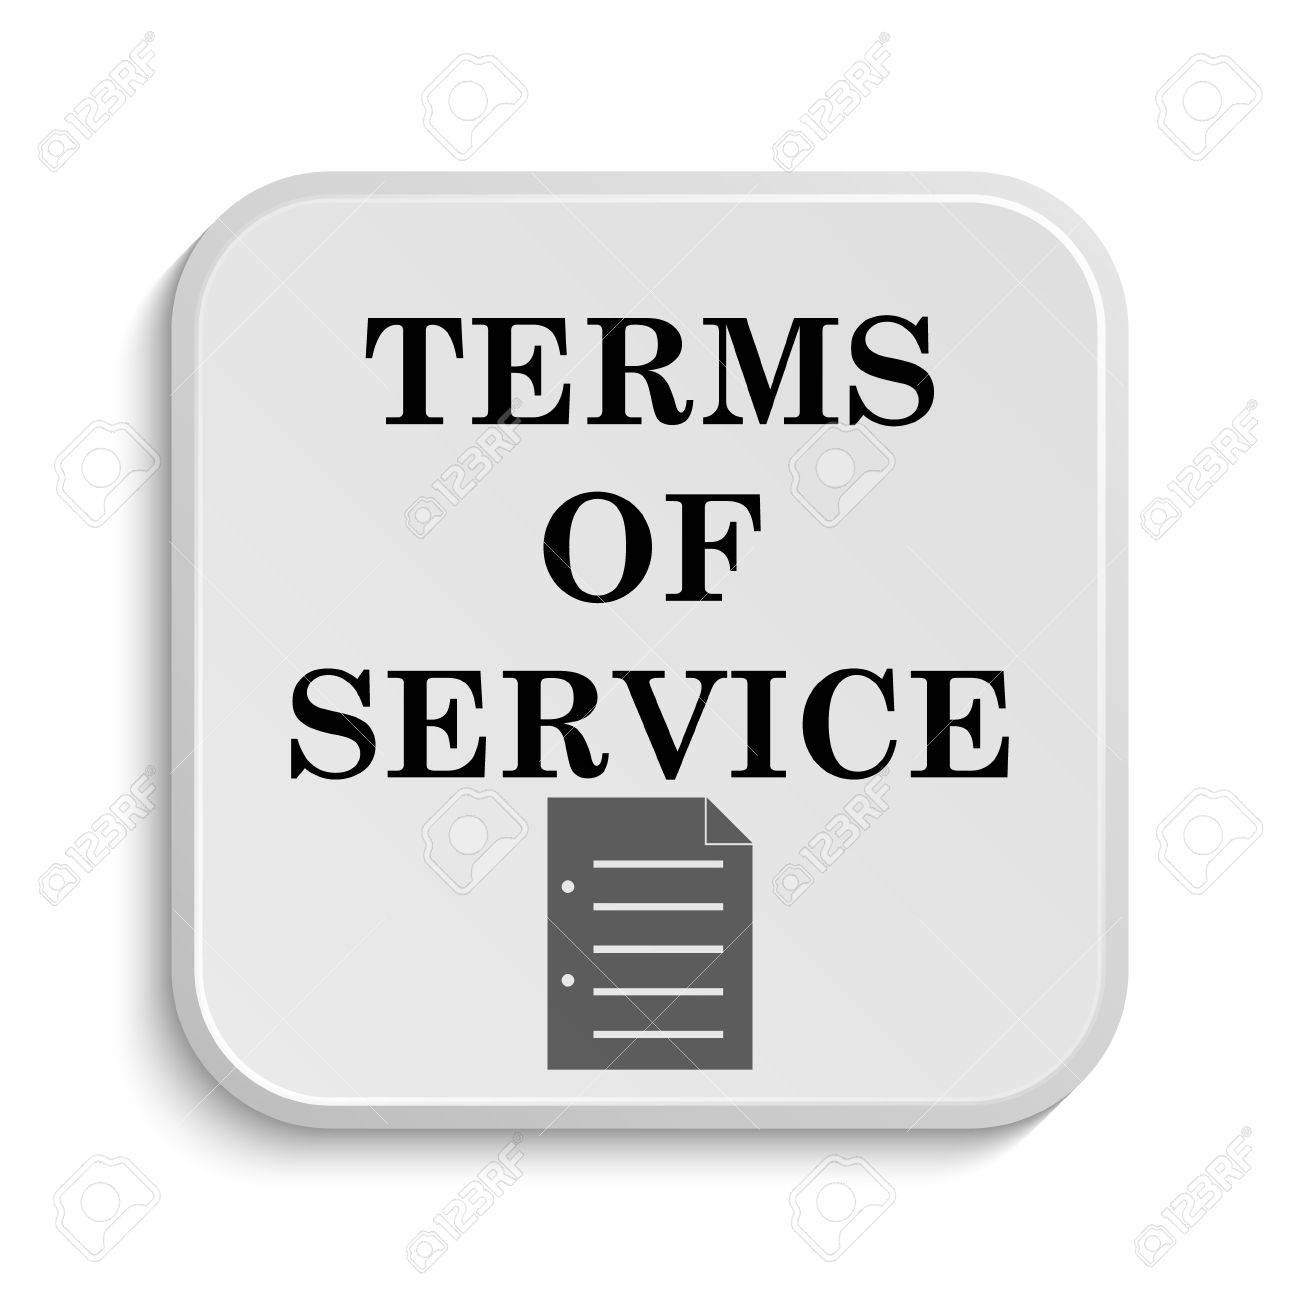 Terms of service icon internet button on white background stock photo 37845981